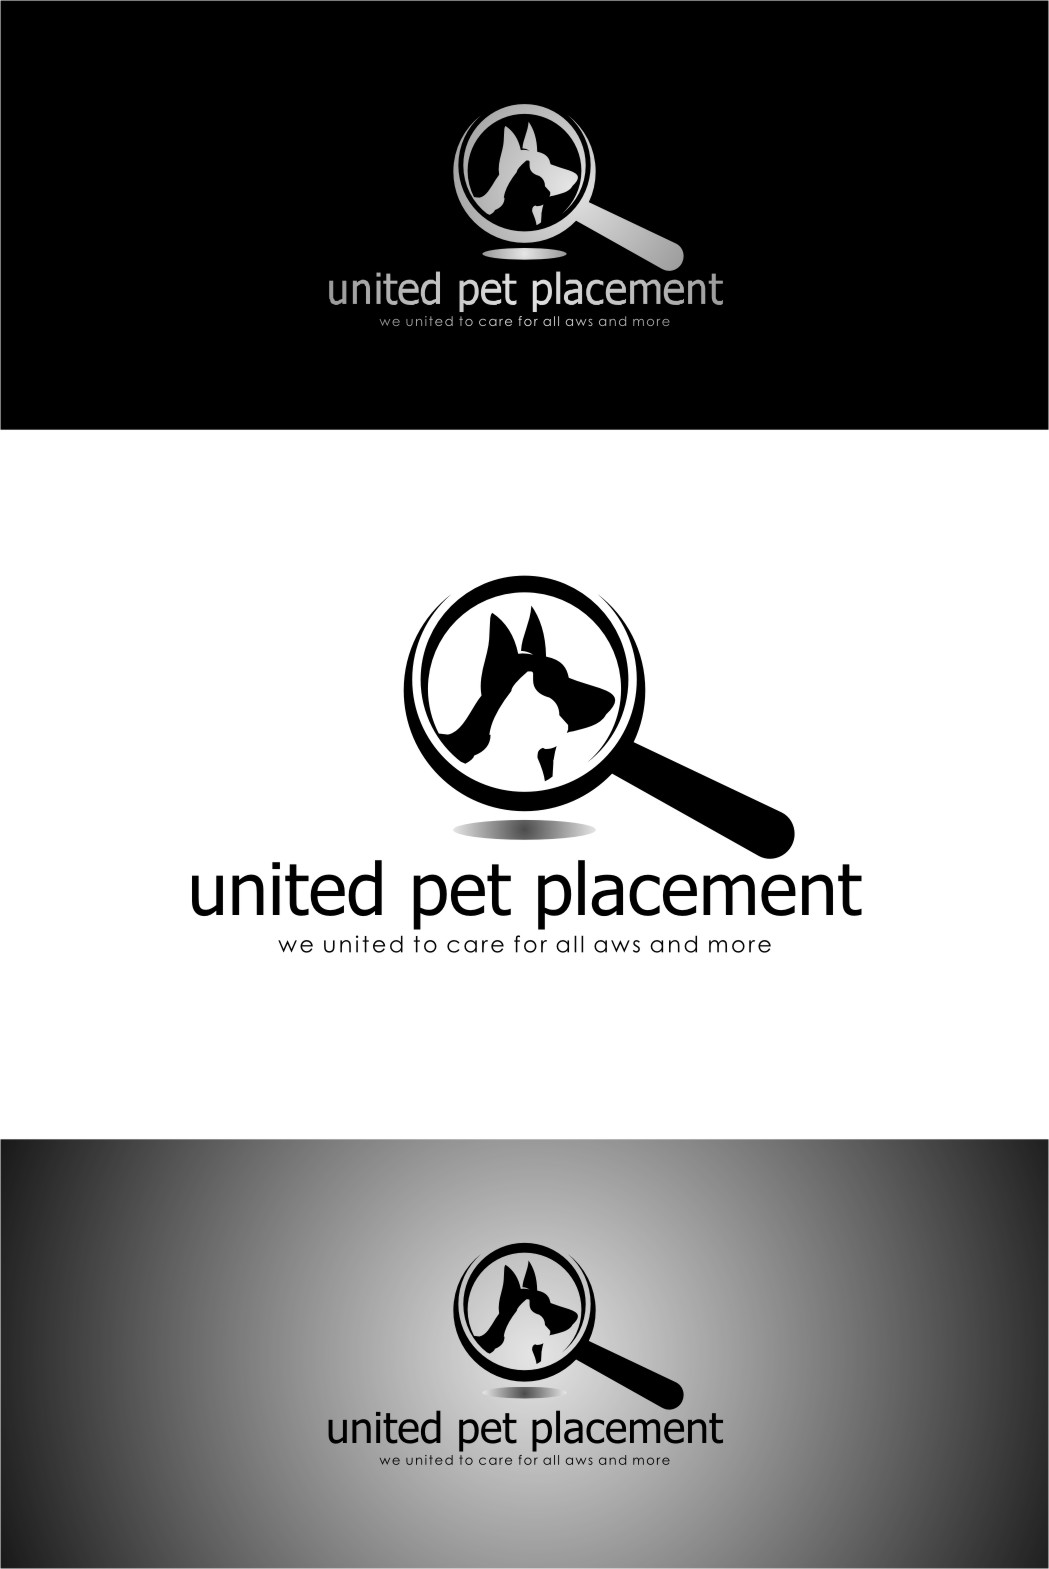 Logo Design by Ngepet_art - Entry No. 30 in the Logo Design Contest Artistic Logo Design for united pet placement.